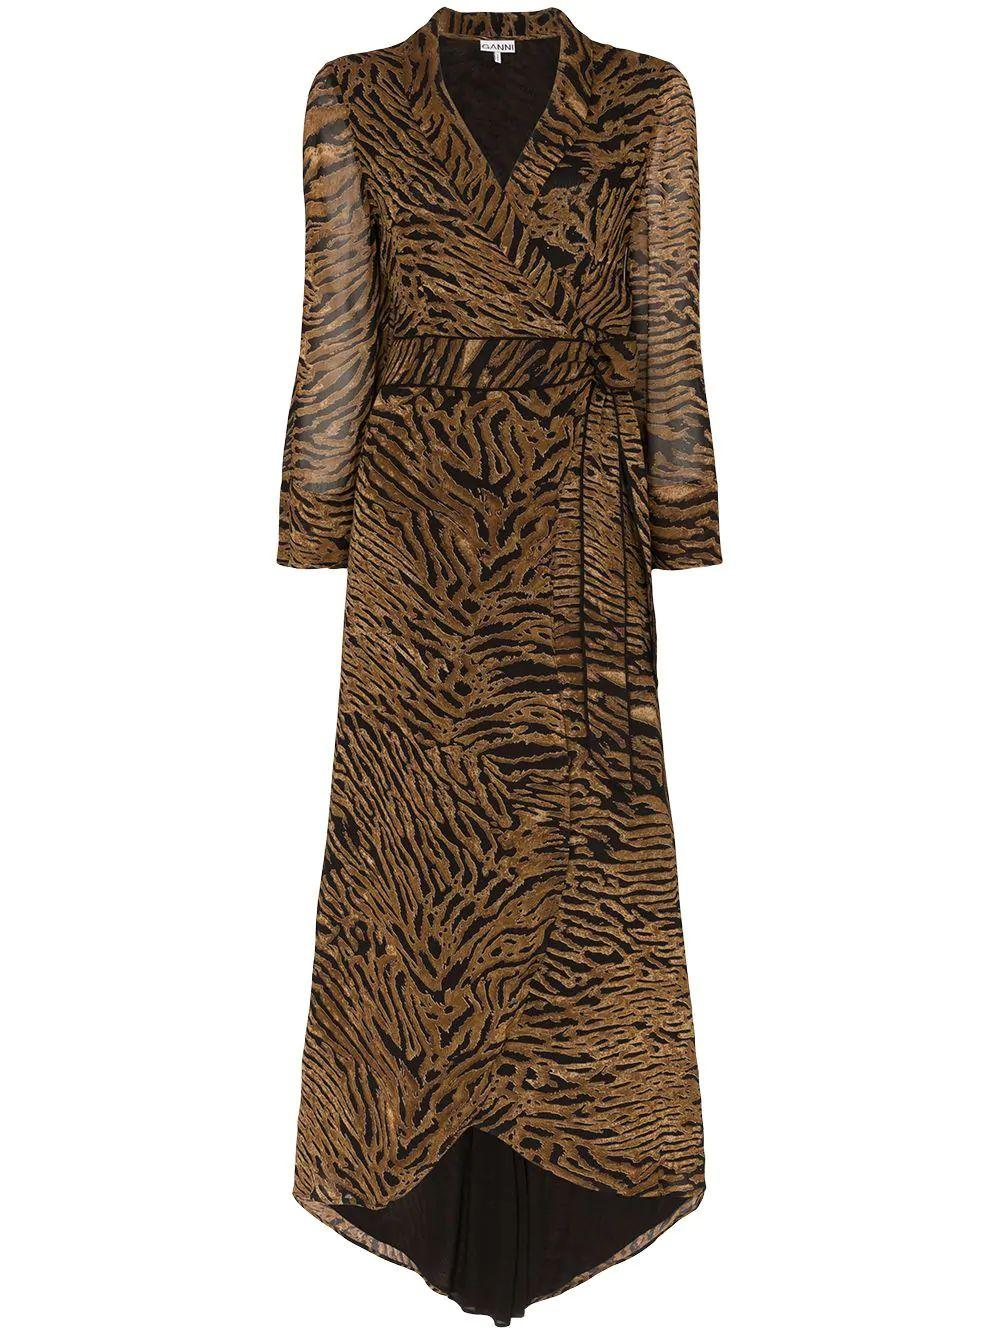 Tiger Print Georgette Wrap Tie Maxi Dress Item # F4047